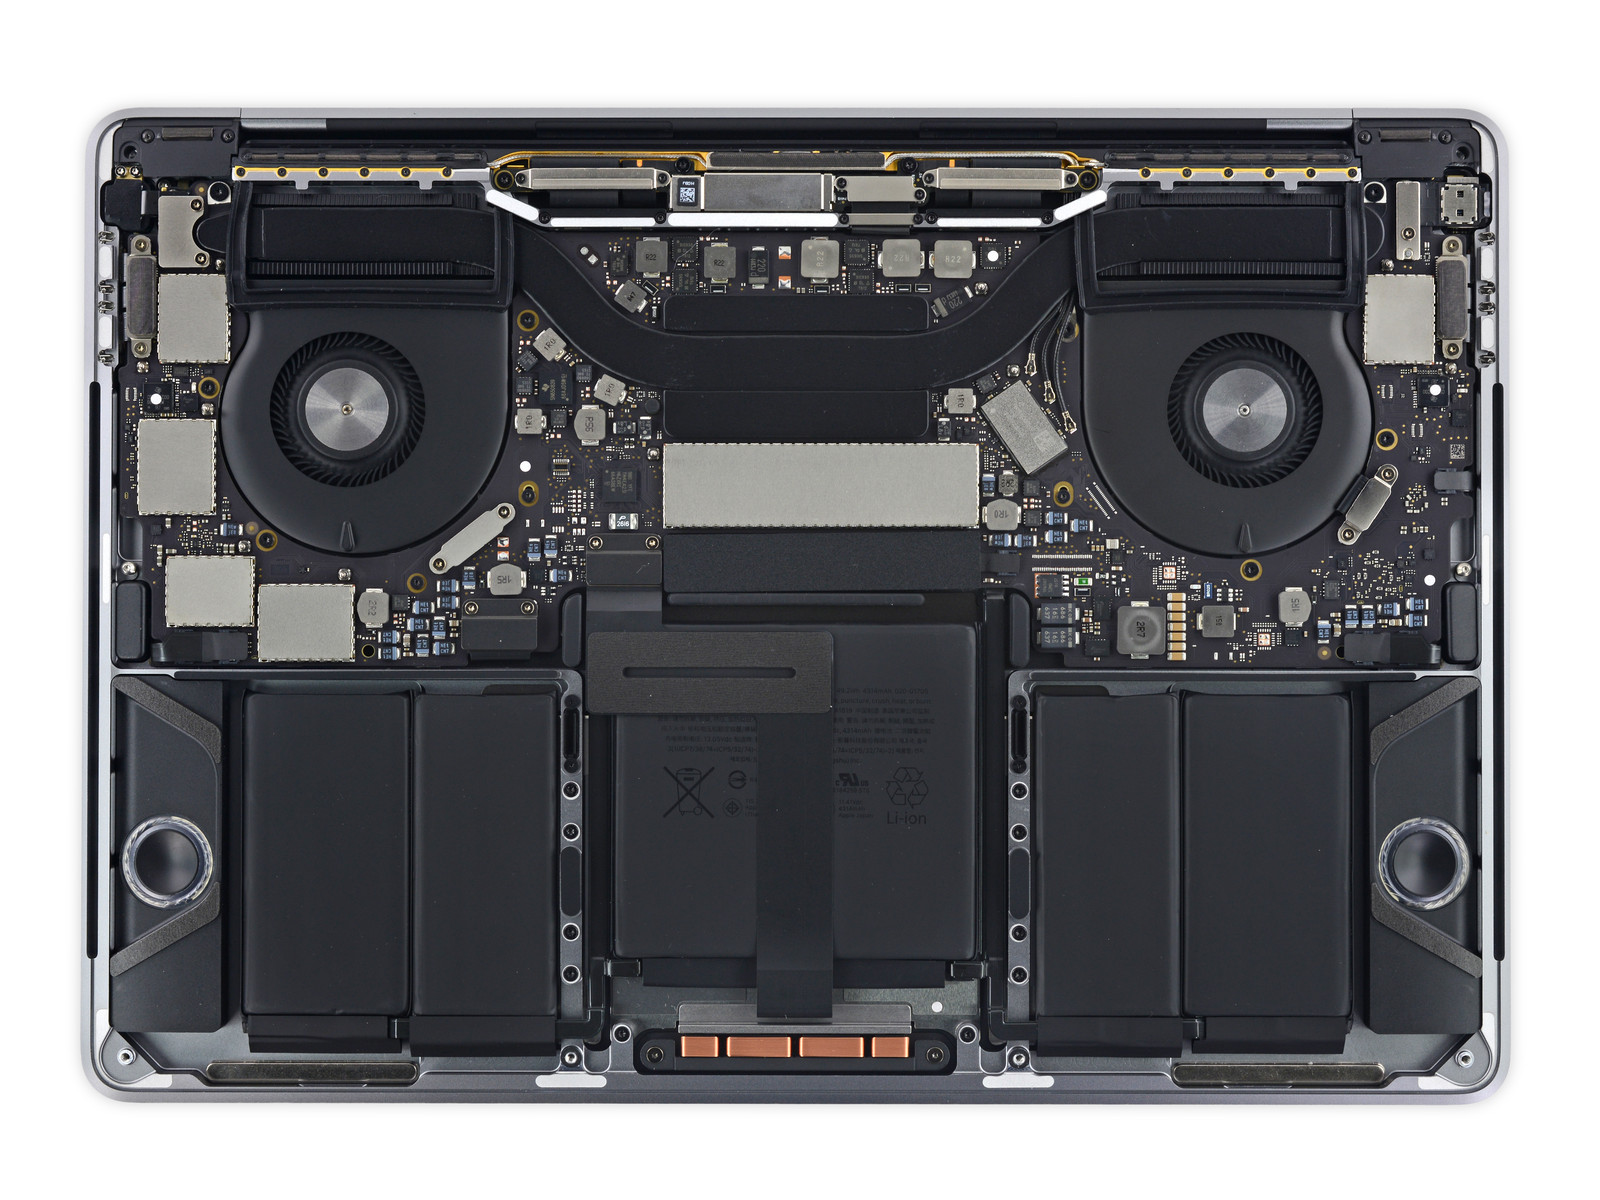 xiaomi-mi-air-vs-dell-xps-13-9360-vs-apple-macbook-pro-13-2016-600-42